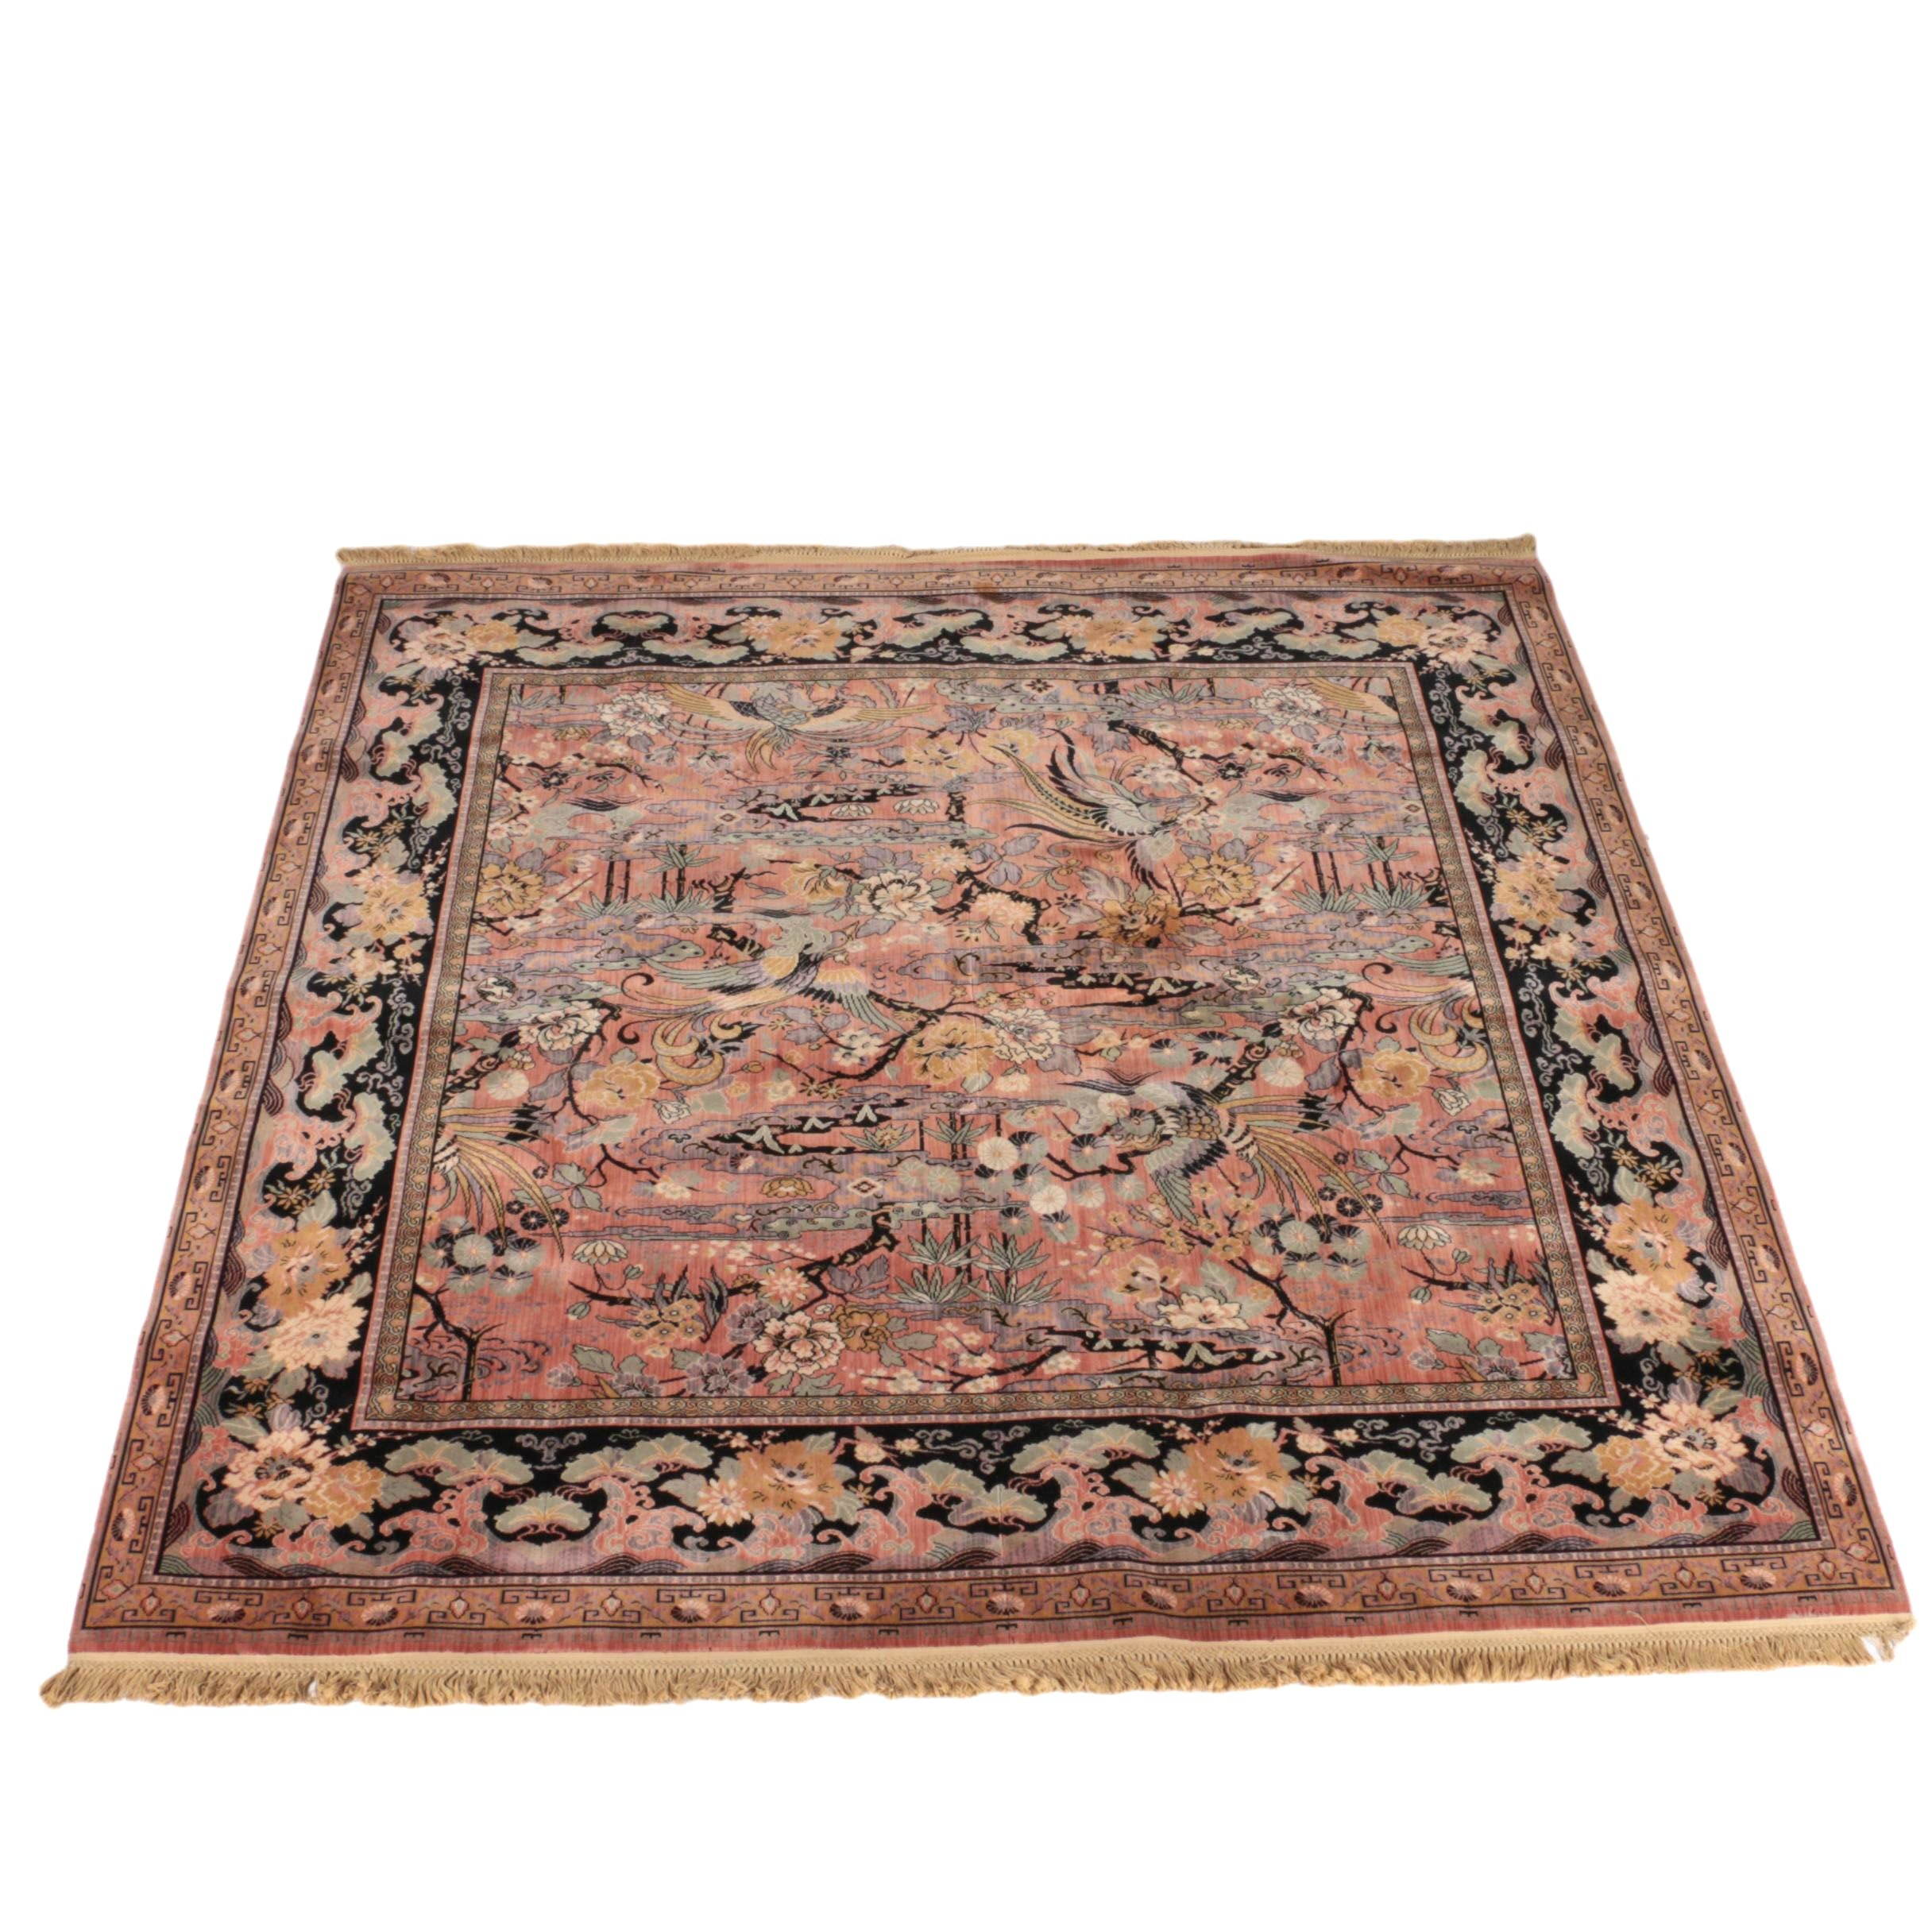 Machine Made Whitall Anglo Persian Wool Area Rug